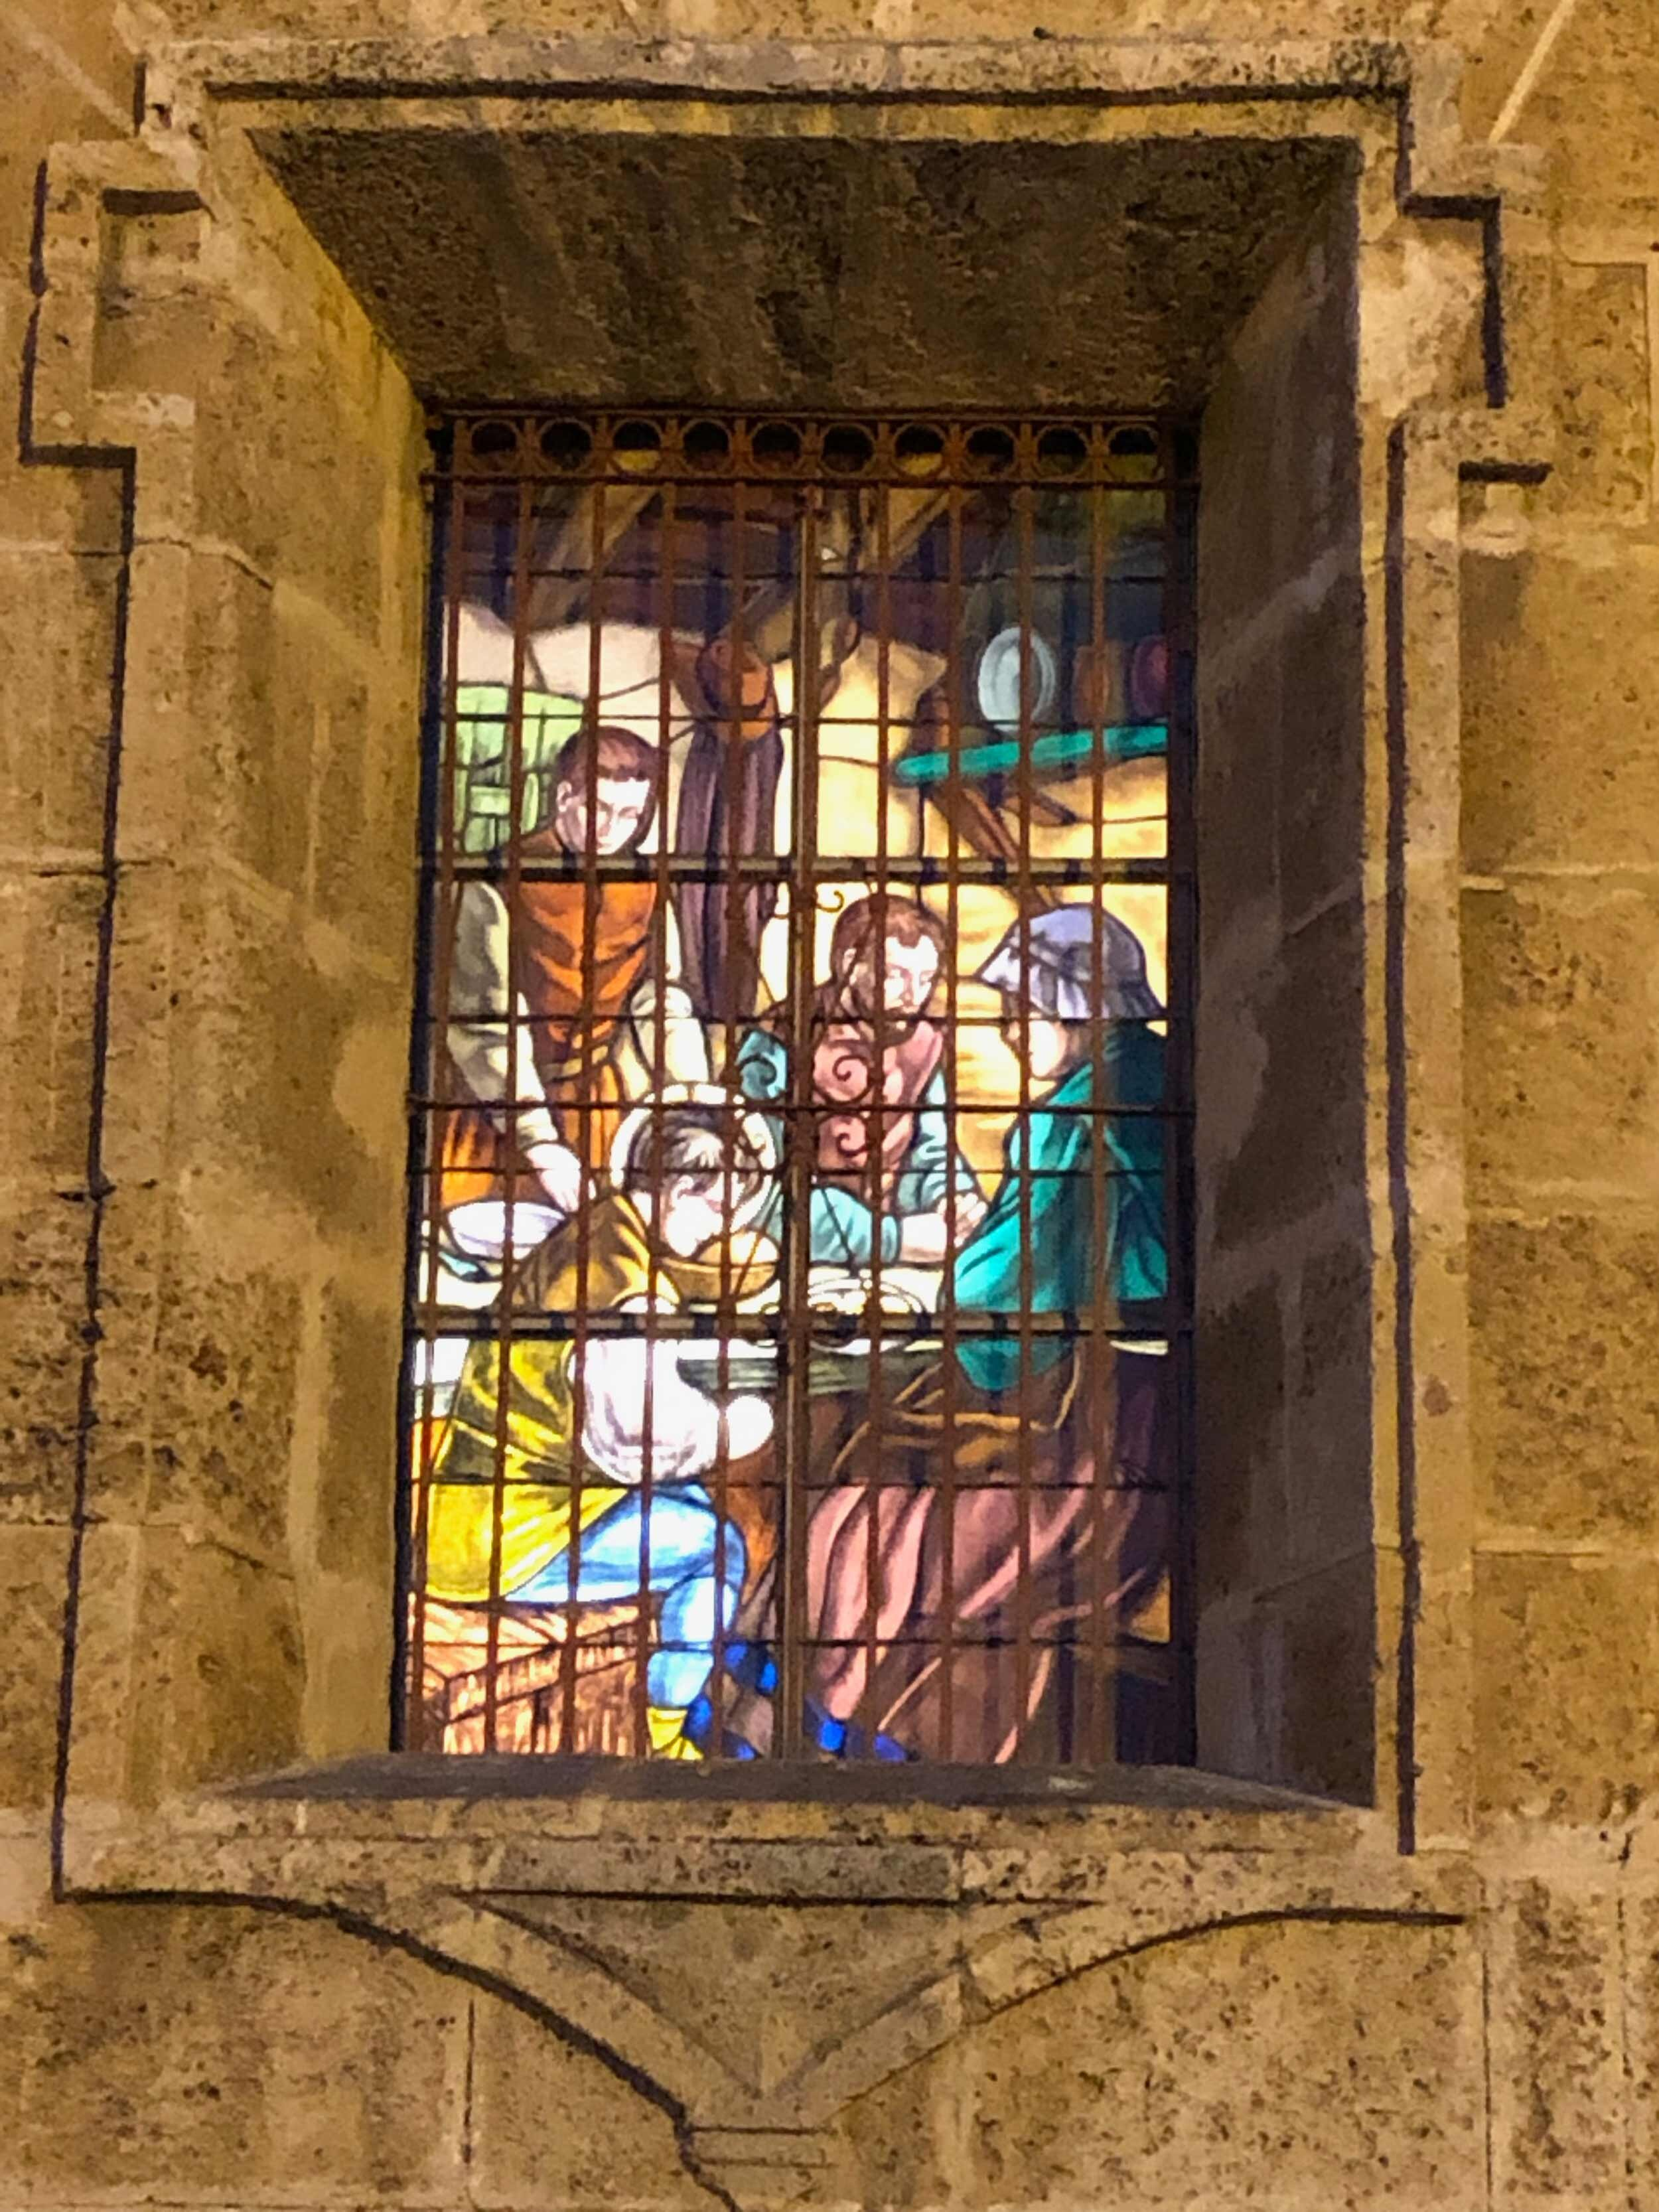 One of the stained glass windows at San Pedro Claver Church depicting the saint's life